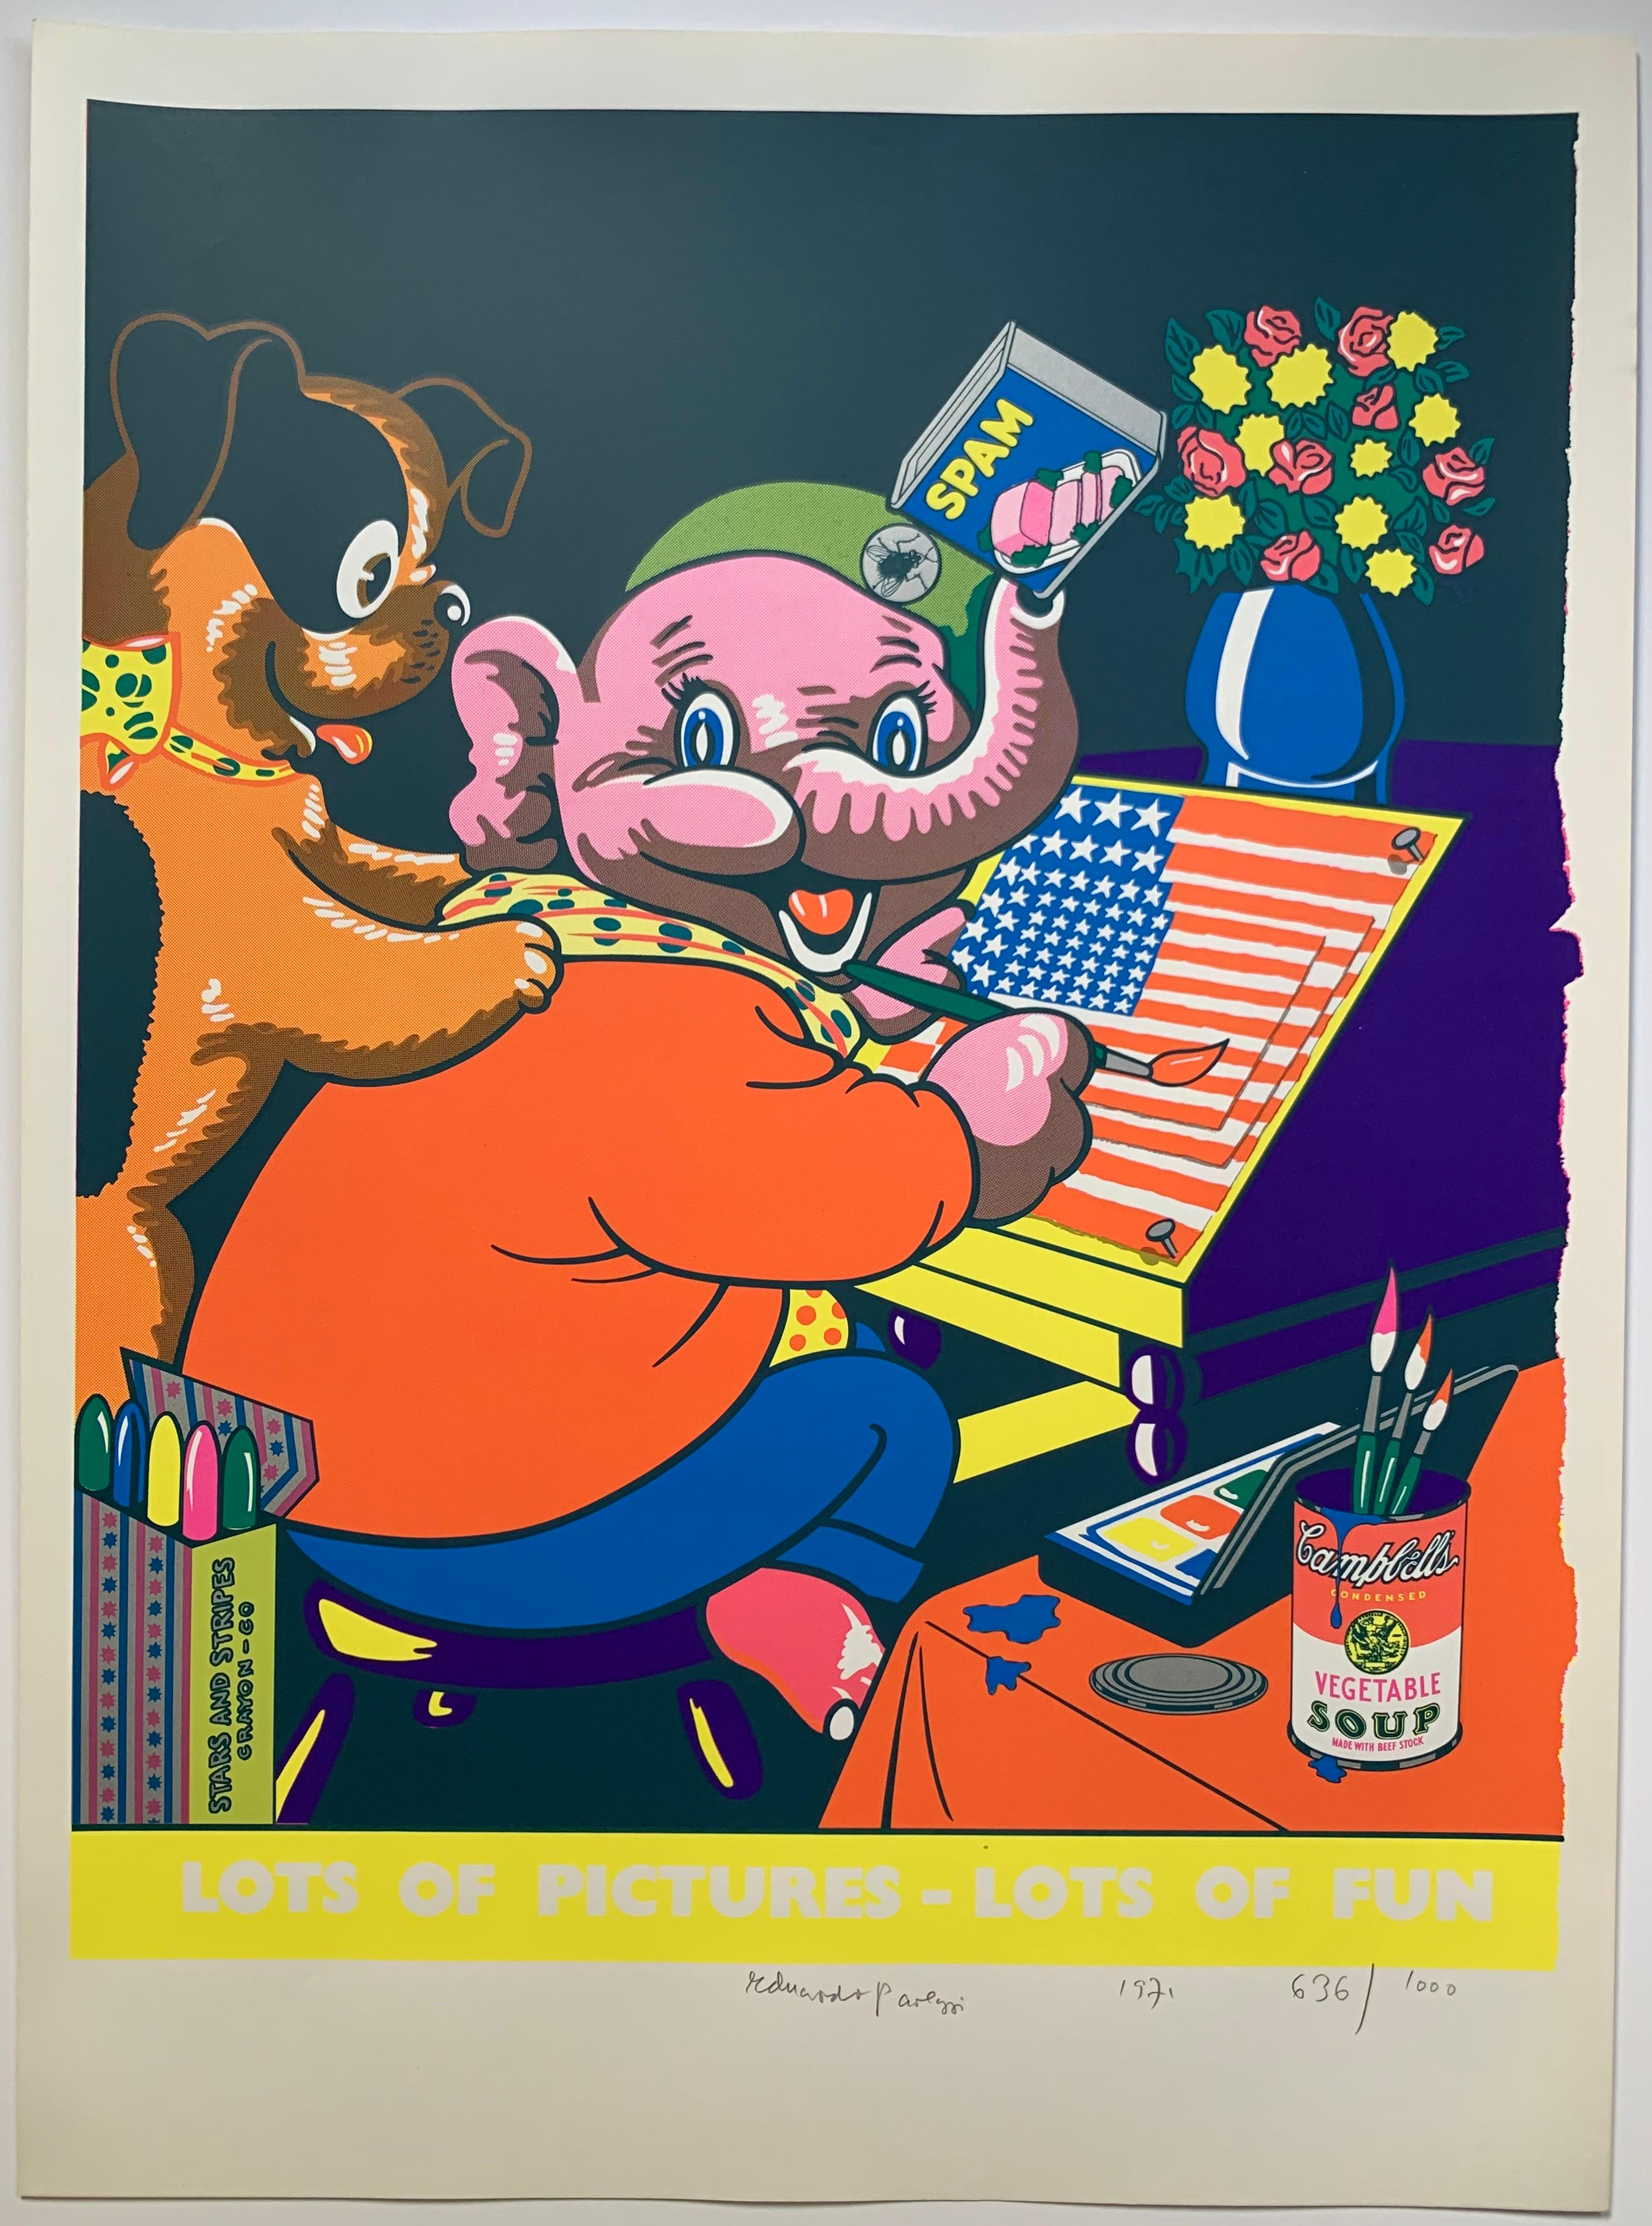 Lots of Pictures, Lots of Fun (Pop Art Crayon Ad)